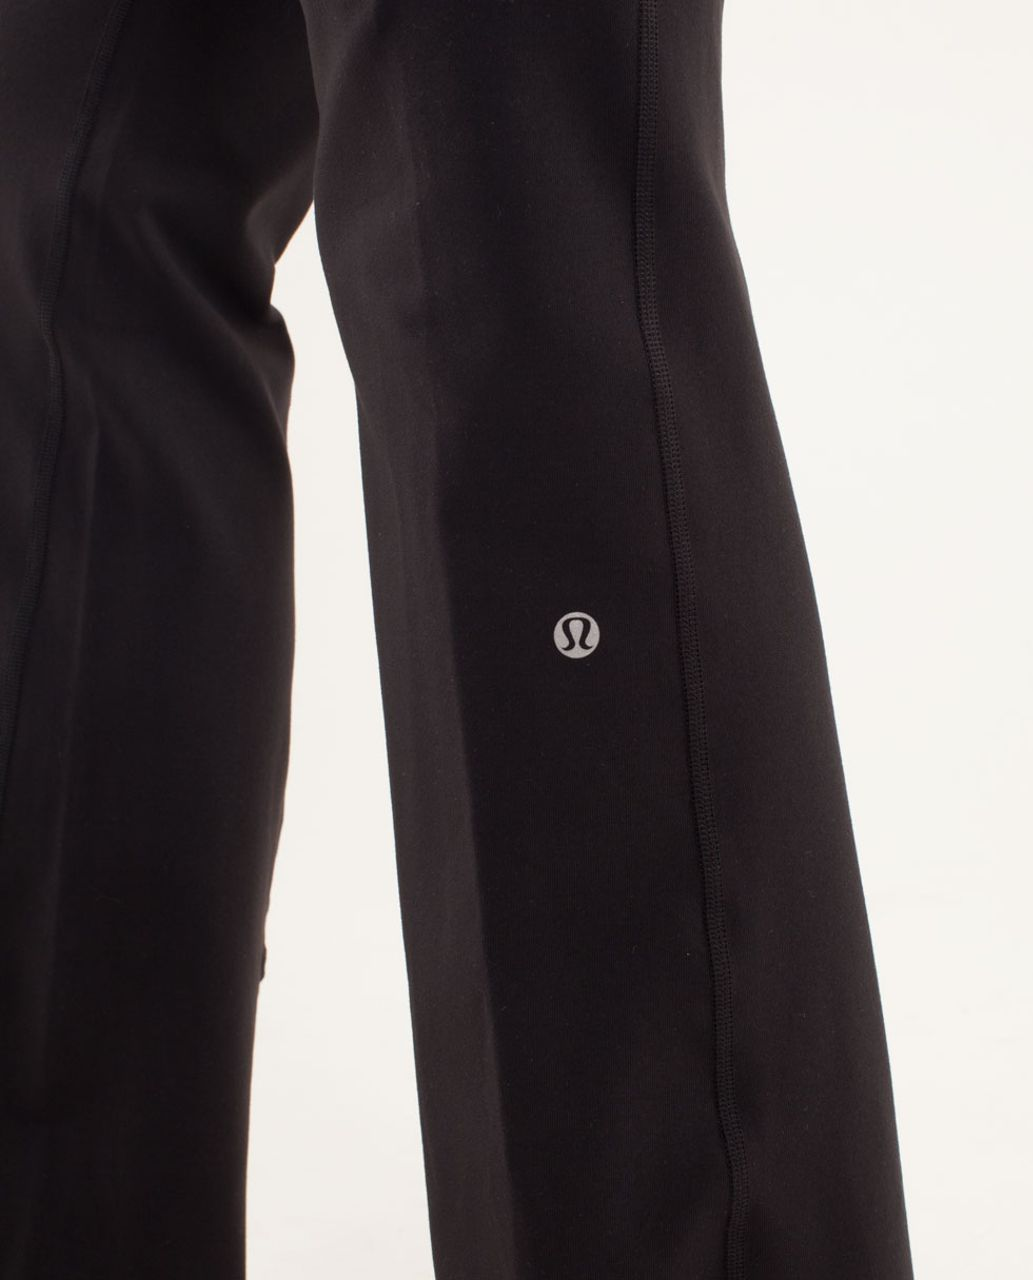 Lululemon Groove Pant (Regular) - Black / Fall Quilt 13 / Angel Blue